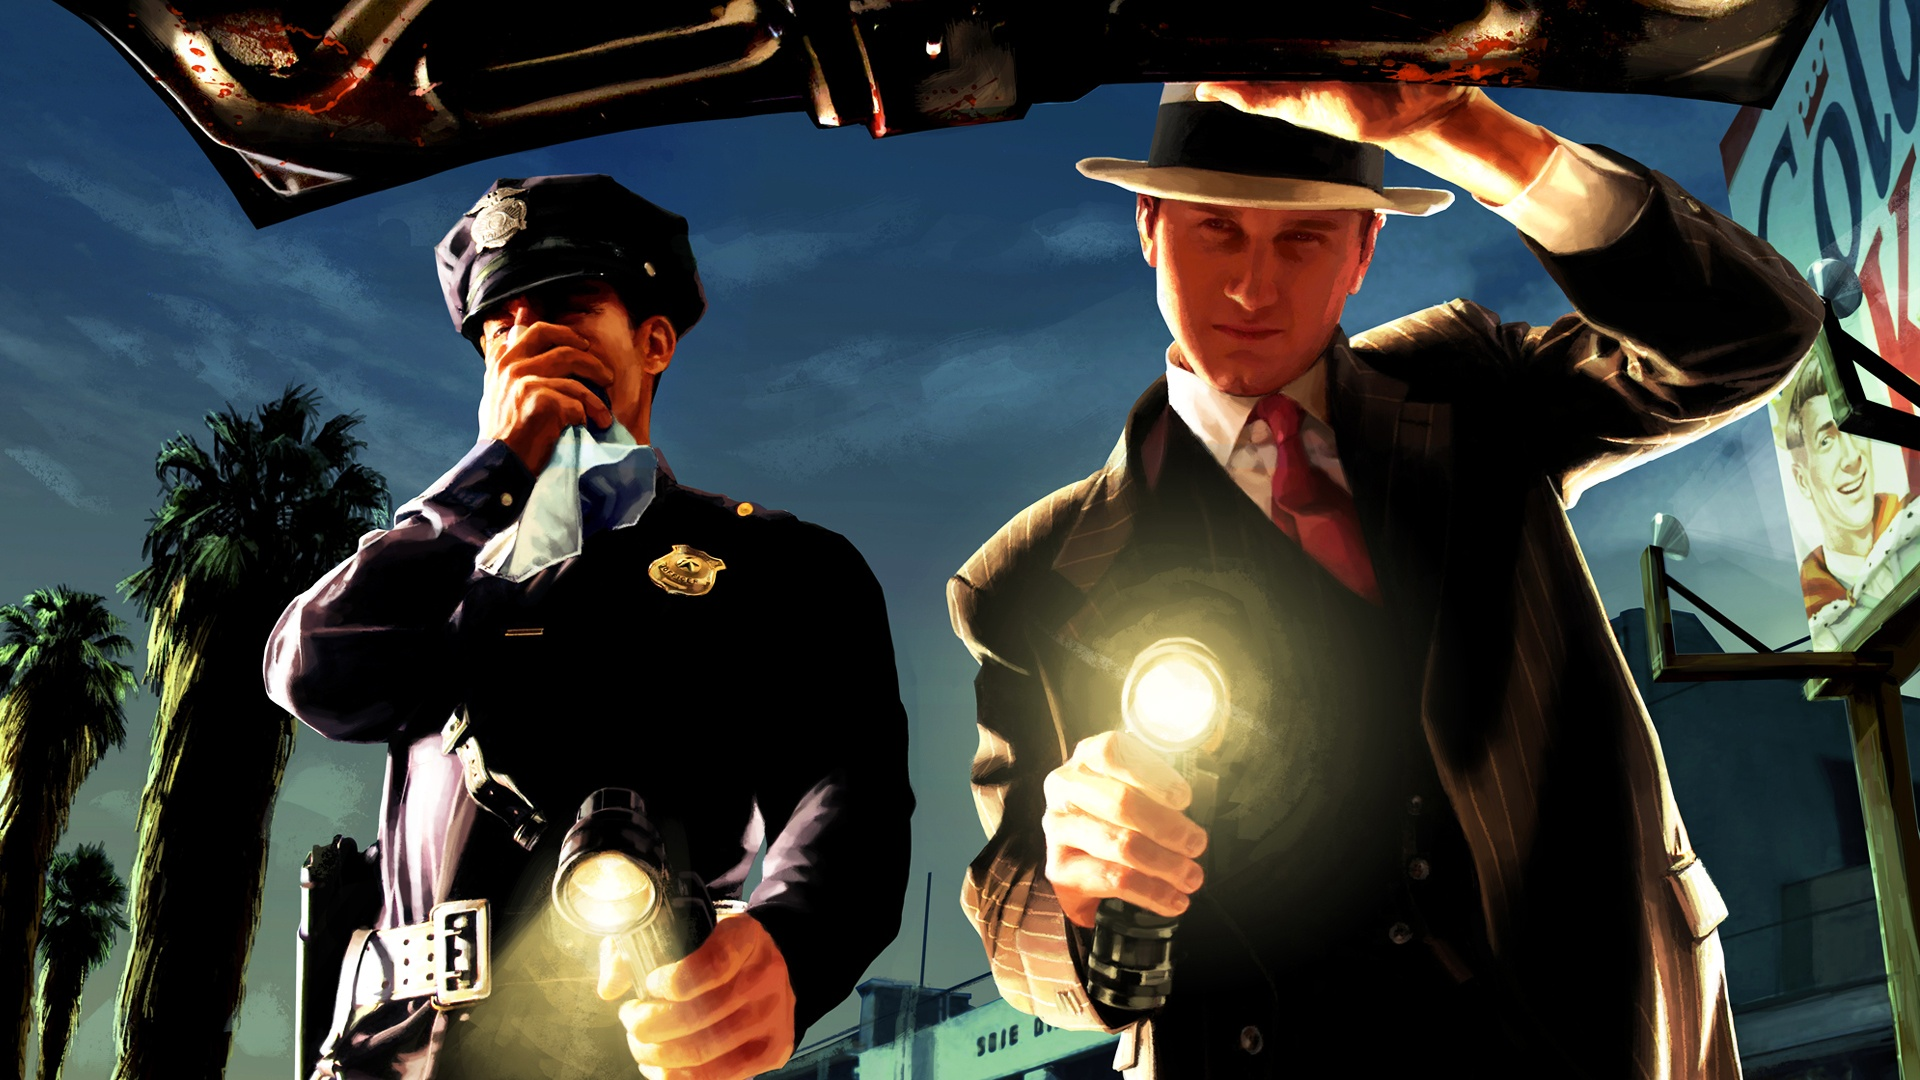 L.A. Noire : The VR Case Files by Rockstar Games for the